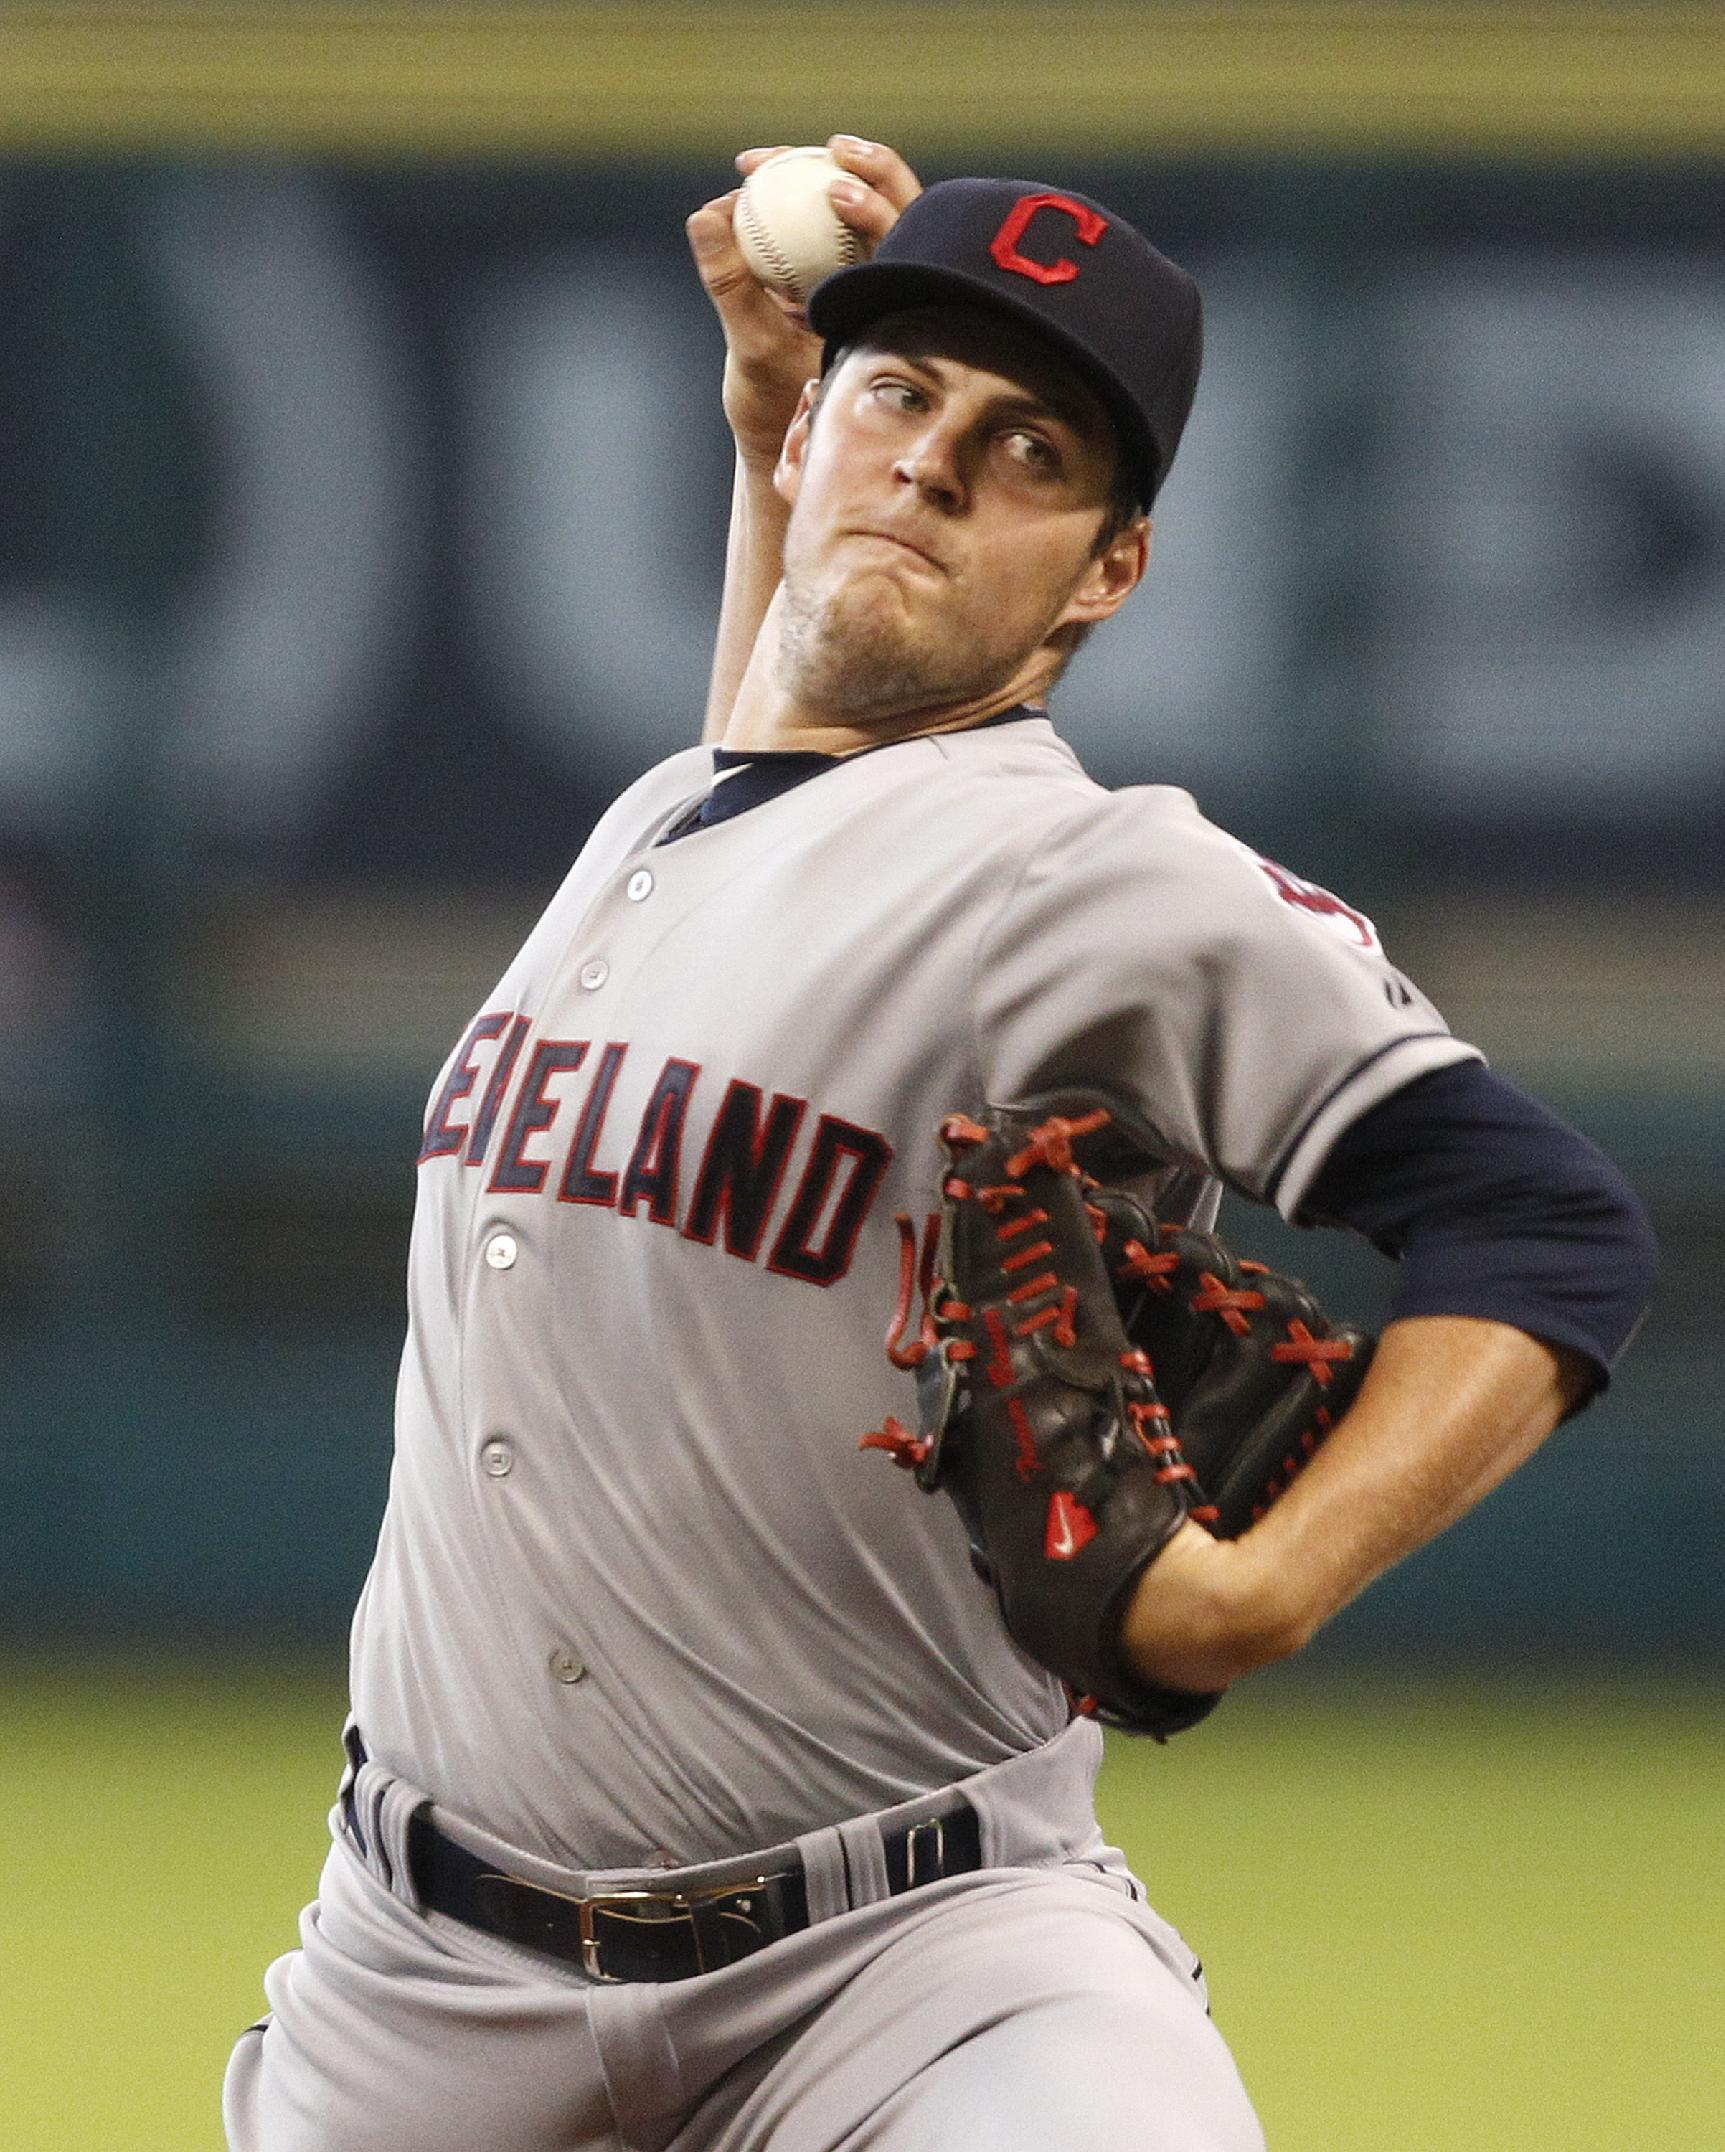 Trevor Bauer, missing bats. (Photo by Bob Levey/Getty Images)